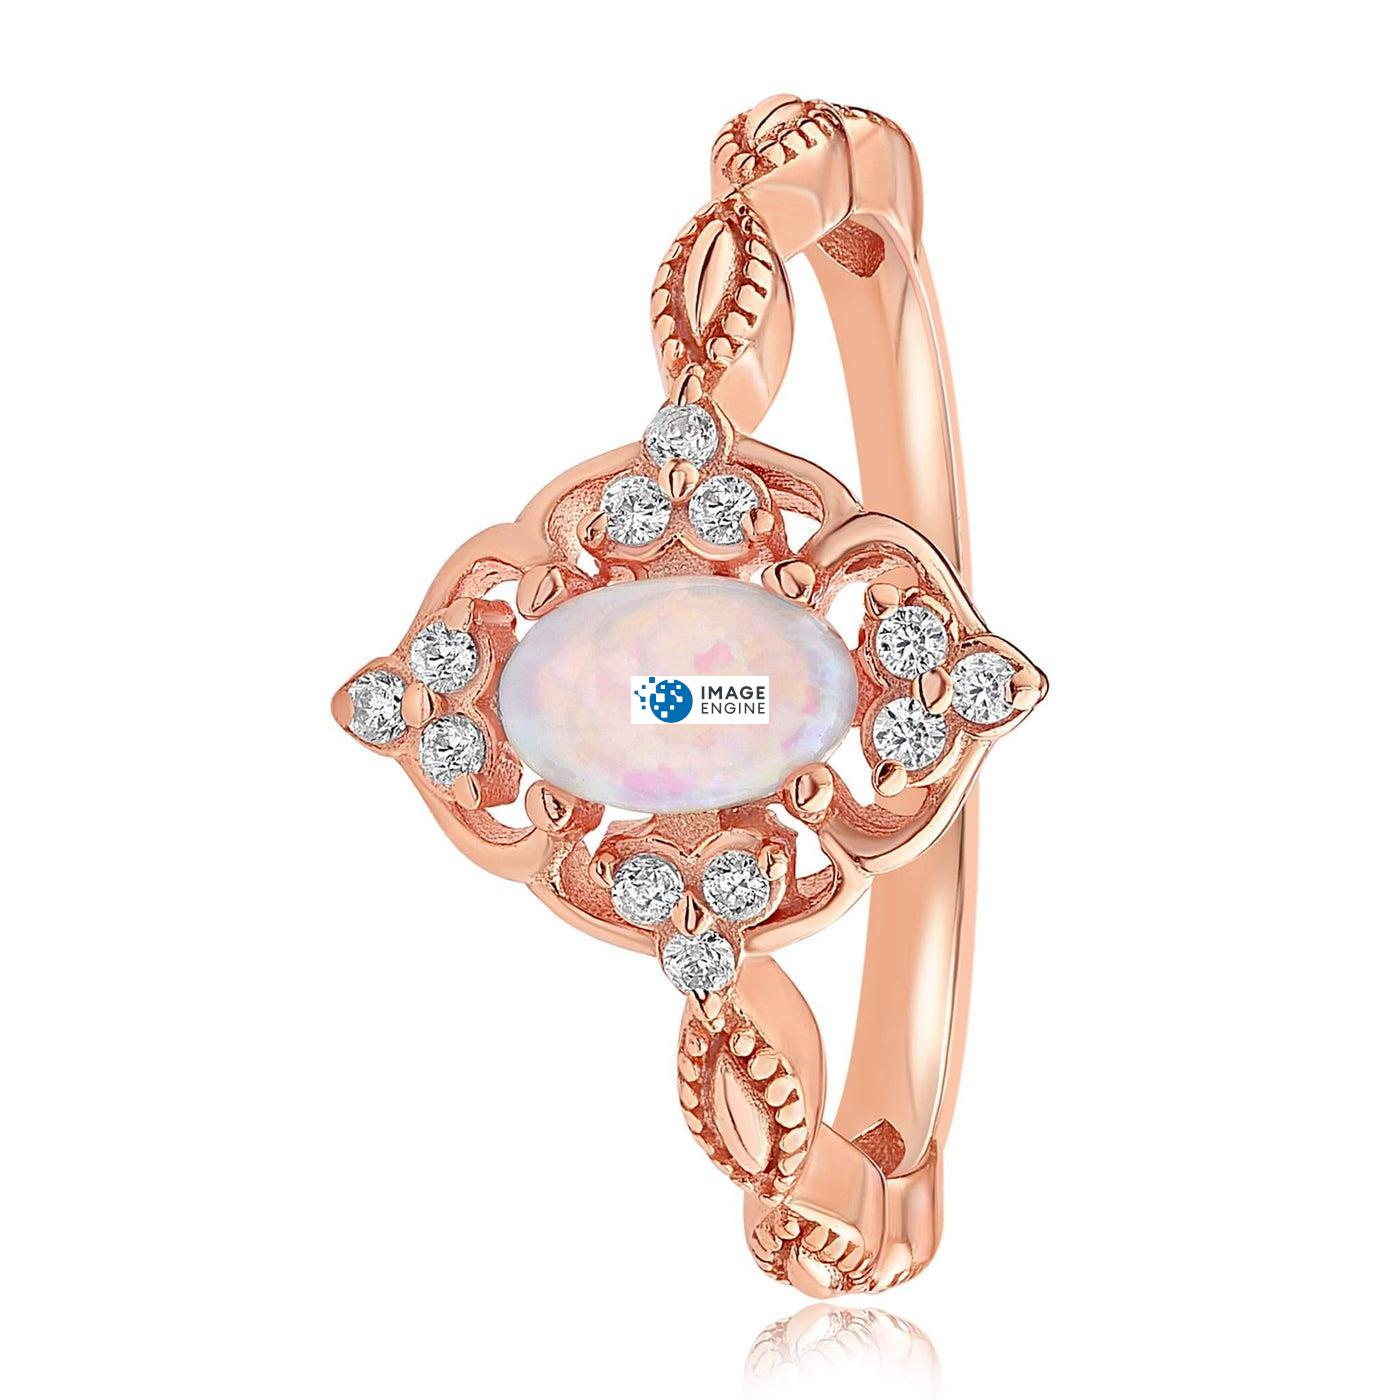 Blue Opal Carved Ring - Side View - 18K Rose Gold Vermeil